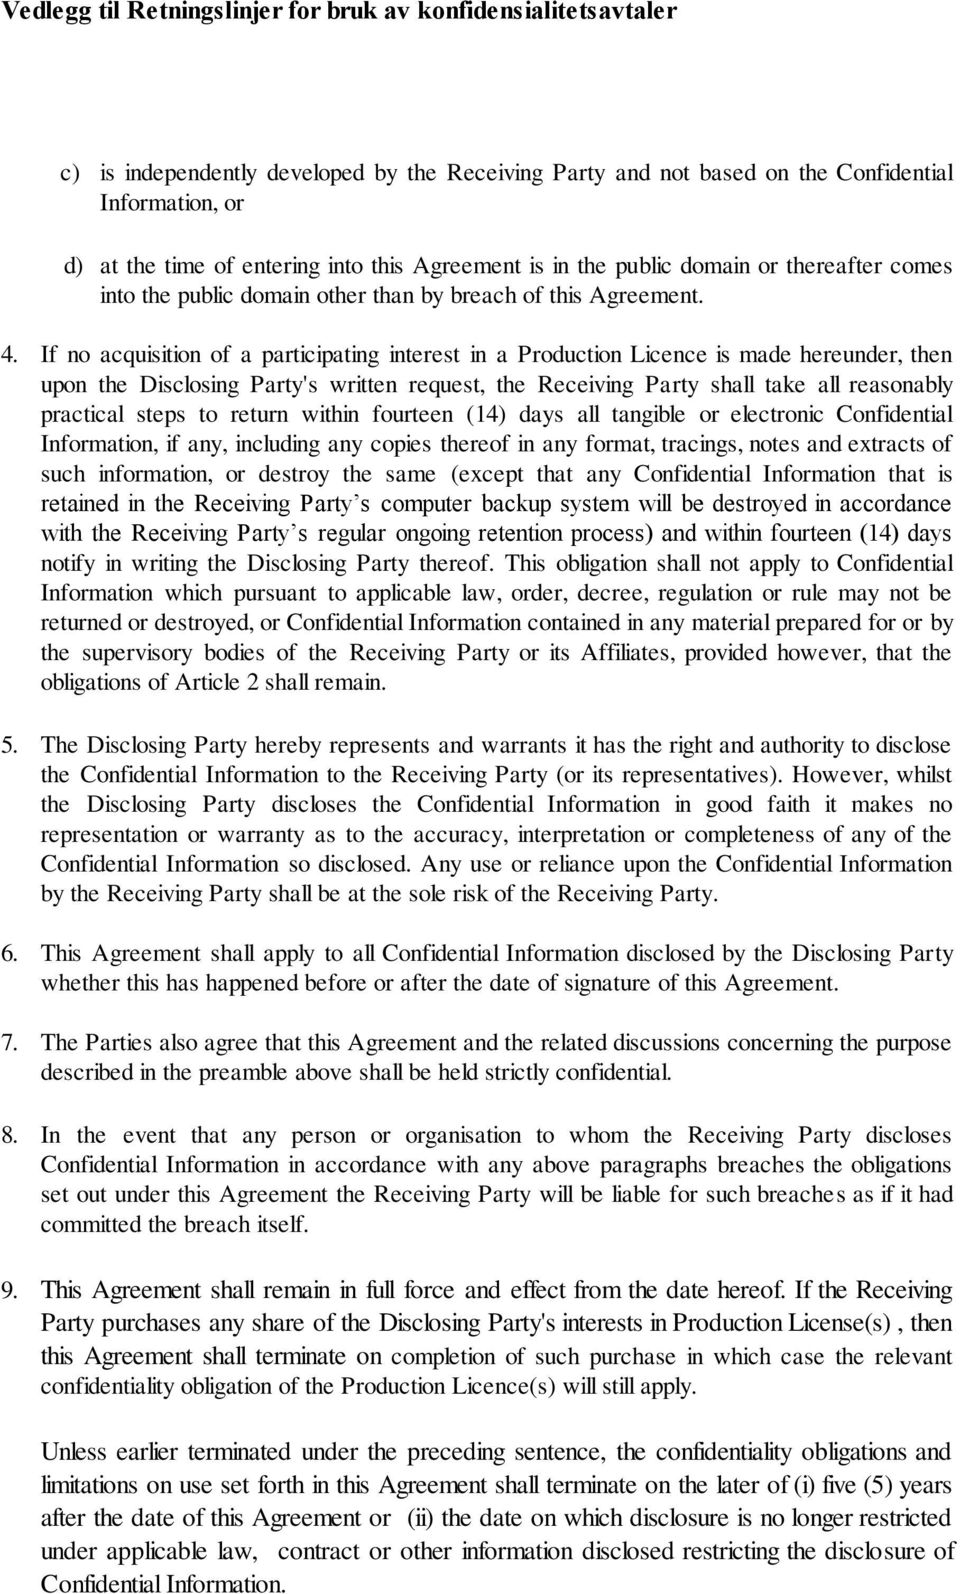 If no acquisition of a participating interest in a Production Licence is made hereunder, then upon the Disclosing Party's written request, the Receiving Party shall take all reasonably practical